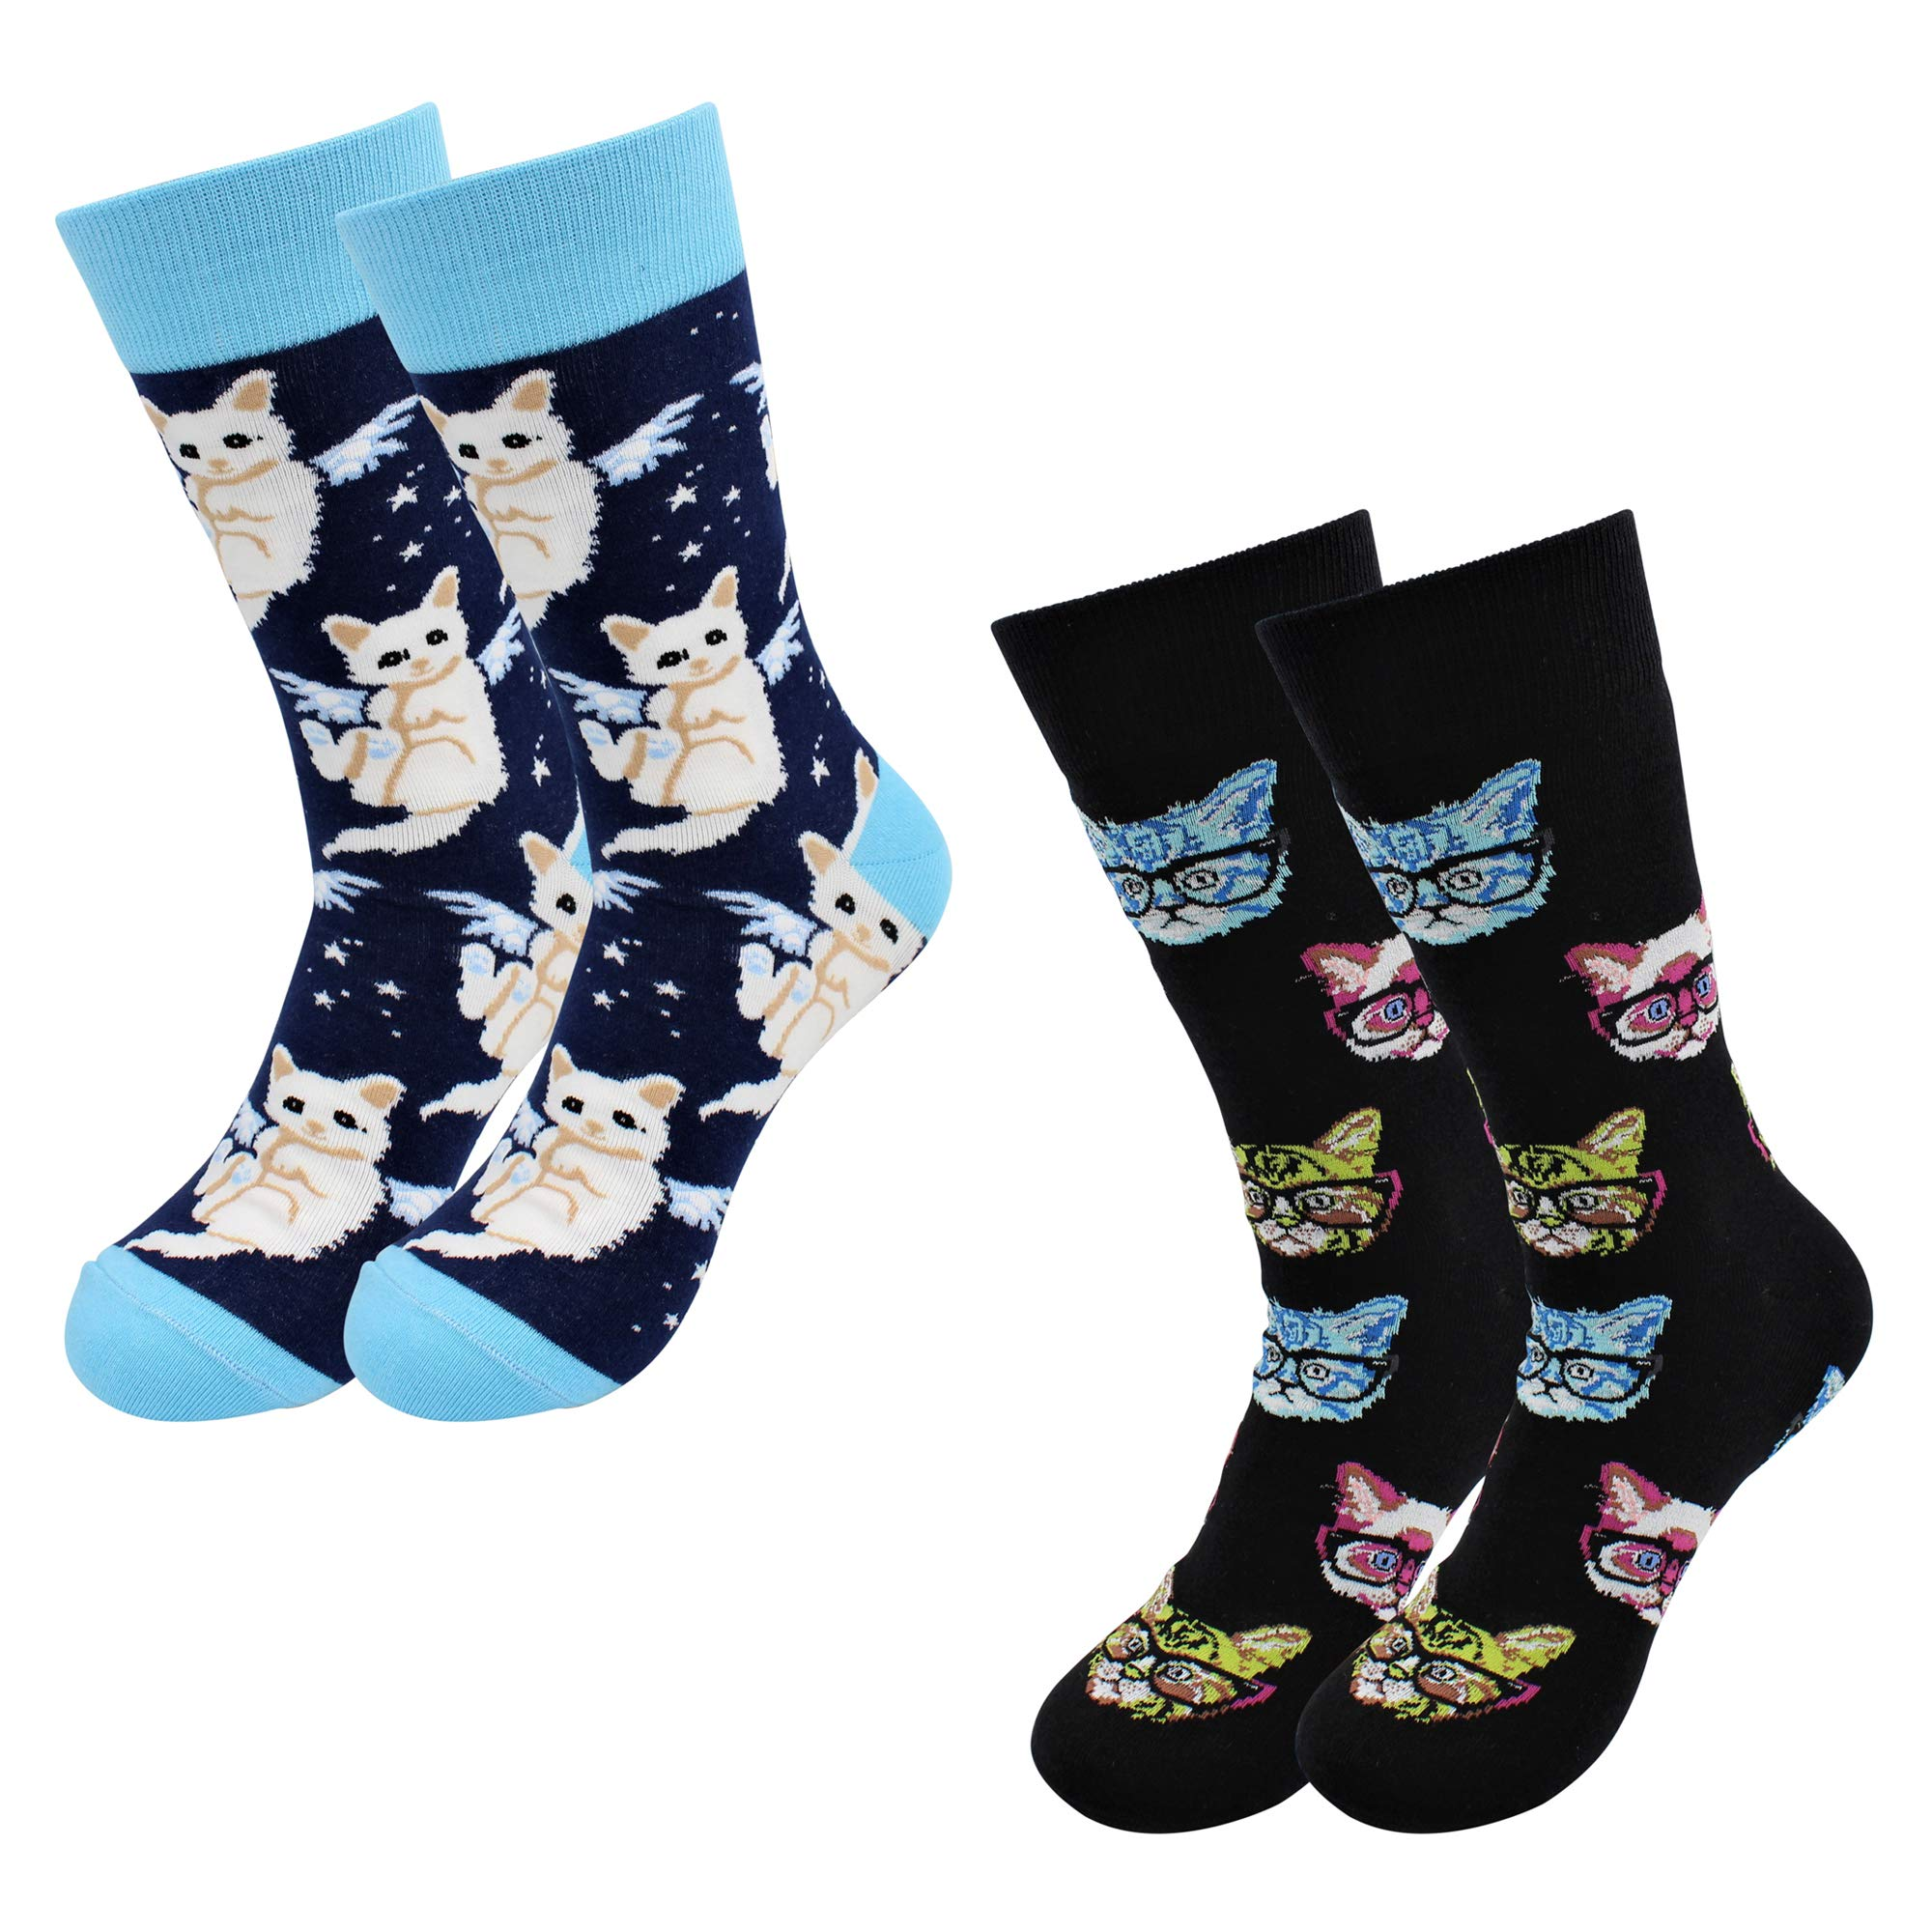 Real Sic Casual Designer Socks for Men and Women - Exotic Animal Series - Breathable and Lightwear Cotton (Cat Kitty Socks 2 Pack)